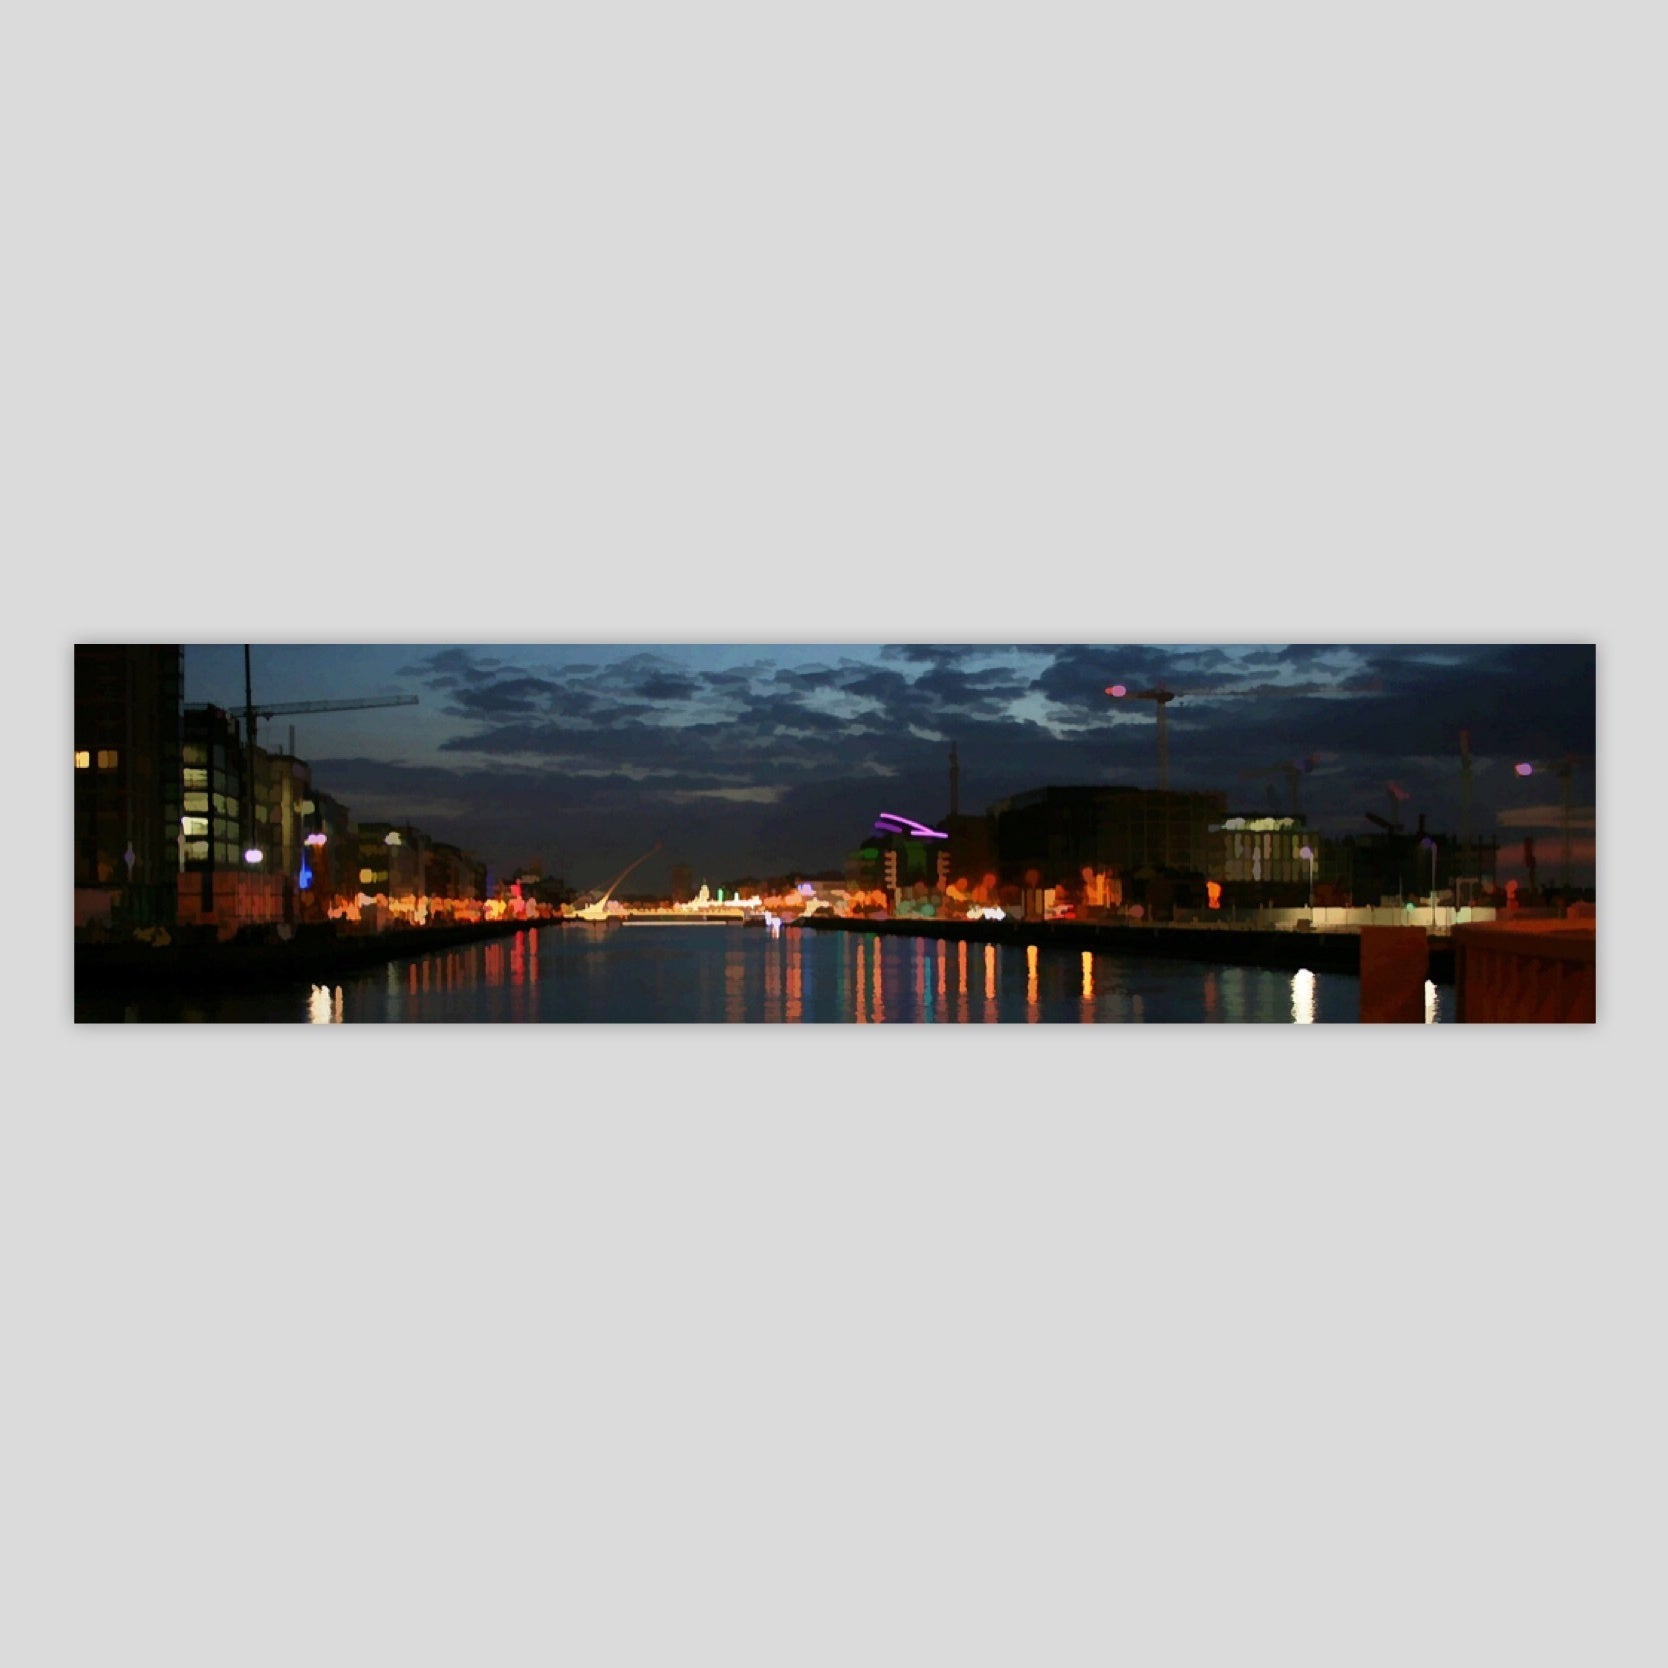 Dublin City Lights 1 (3532P-M3)